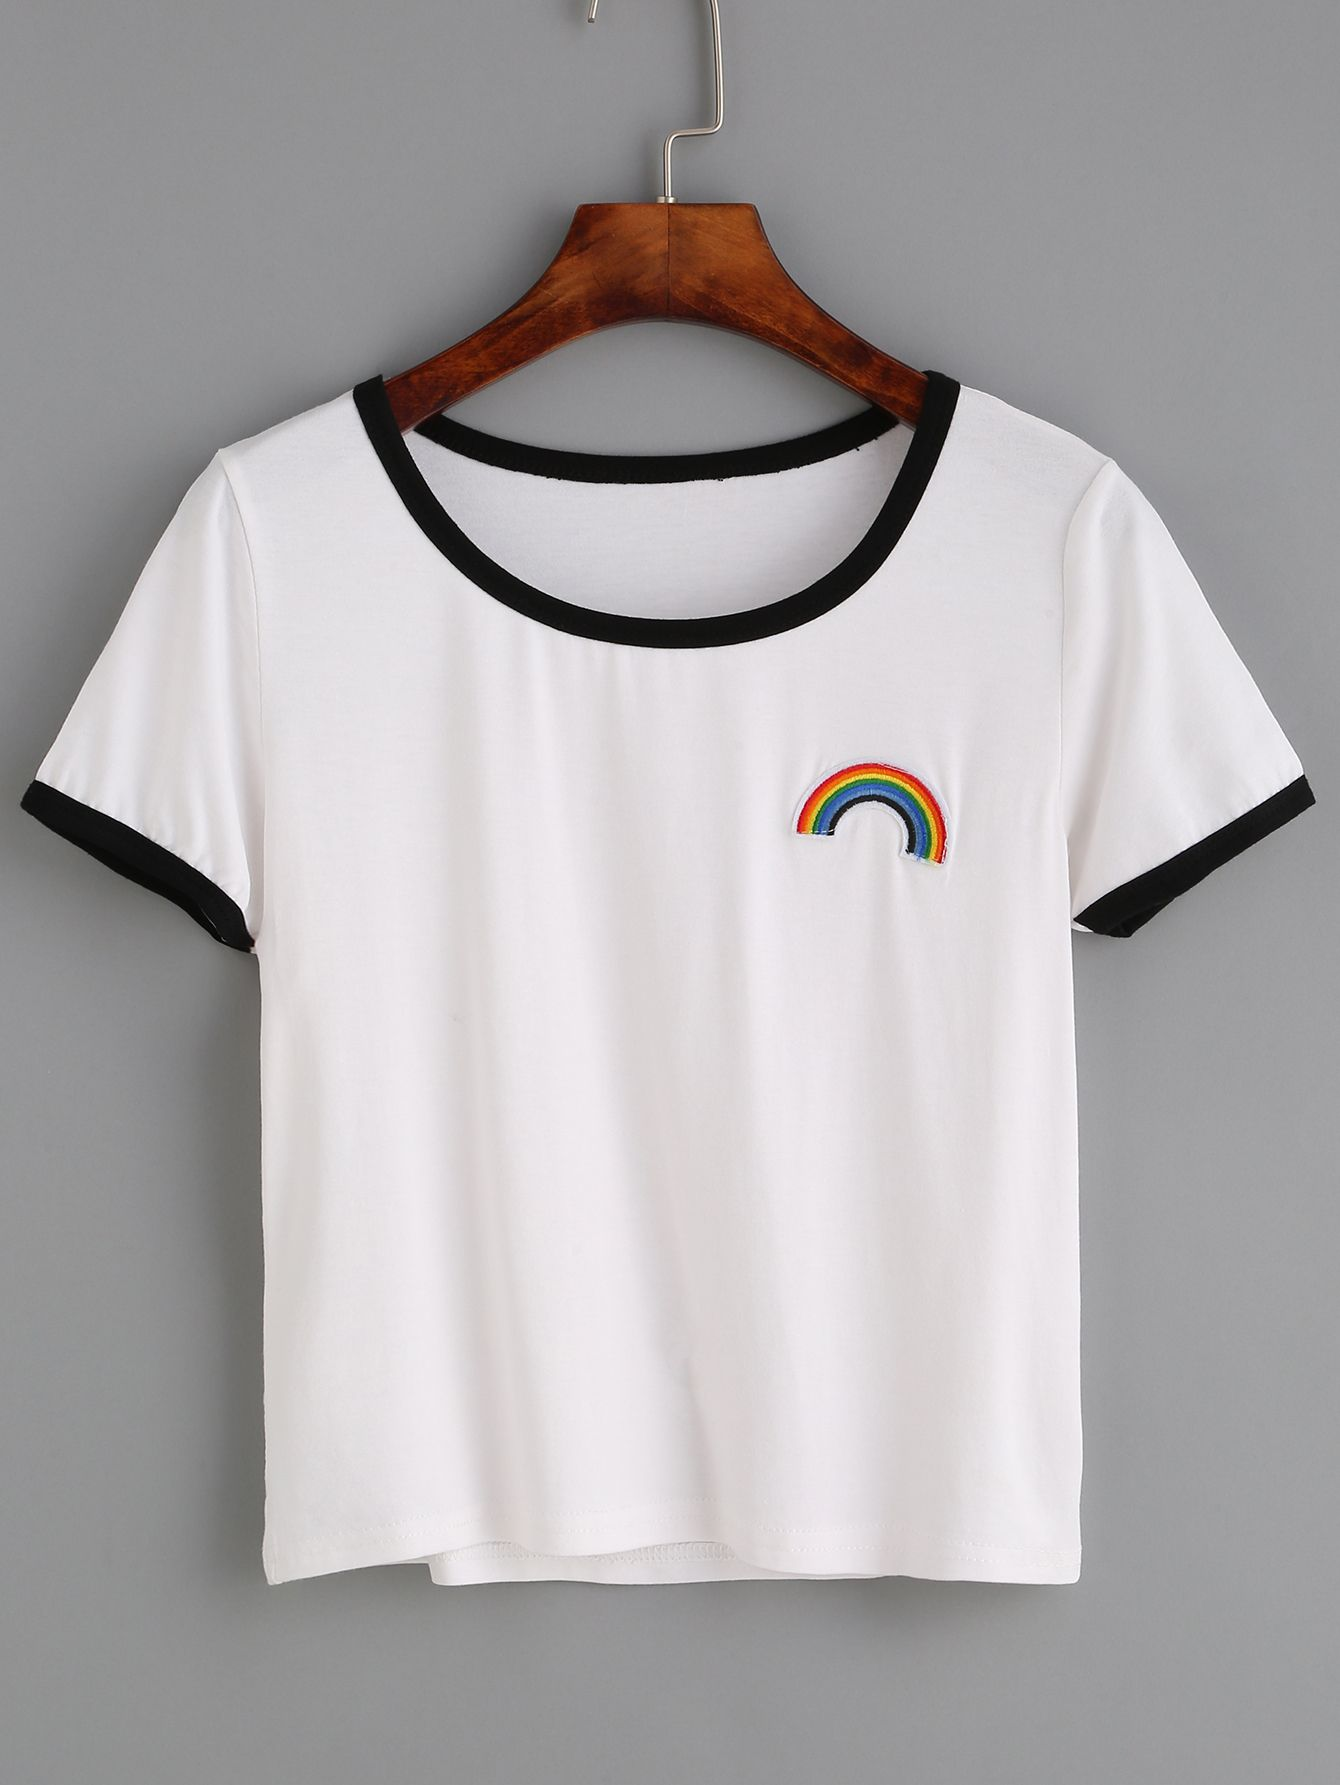 2beb9a6b558 Shop White Contrast Trim Rainbow Embroidered T-shirt online. SheIn offers  White Contrast Trim Rainbow Embroidered T-shirt   more to fit your  fashionable ...